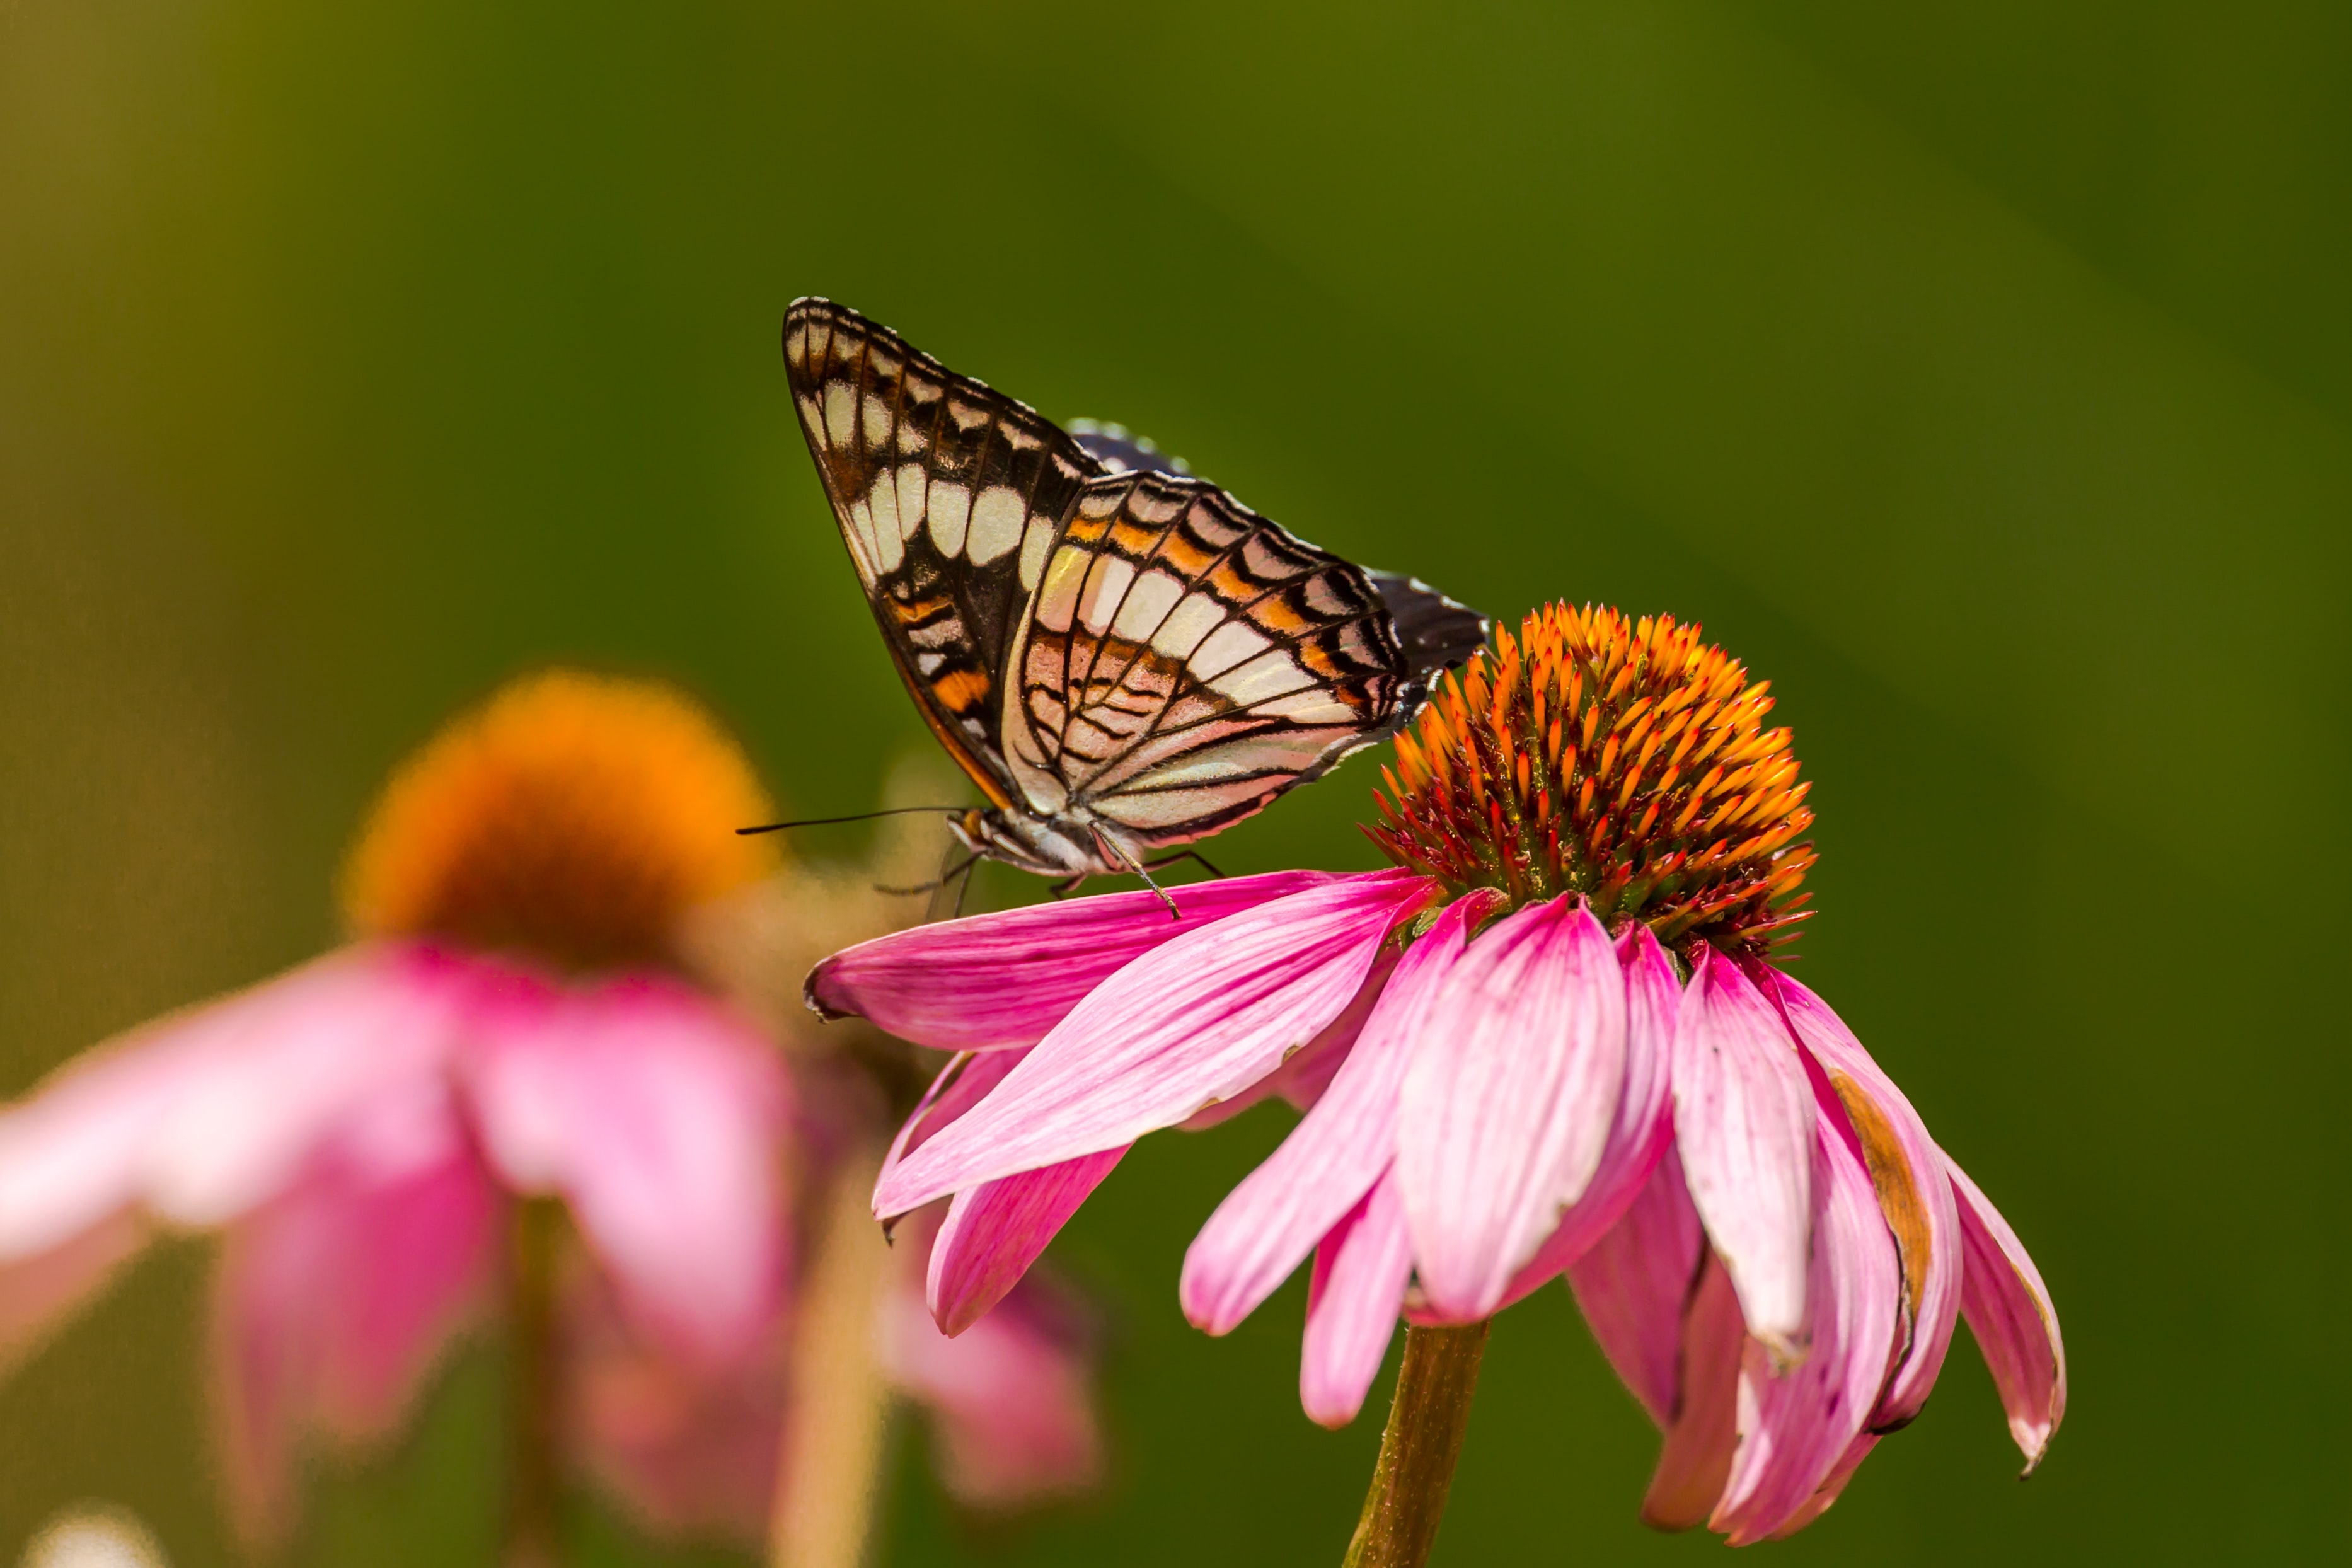 Butterfly lands on a pink flower